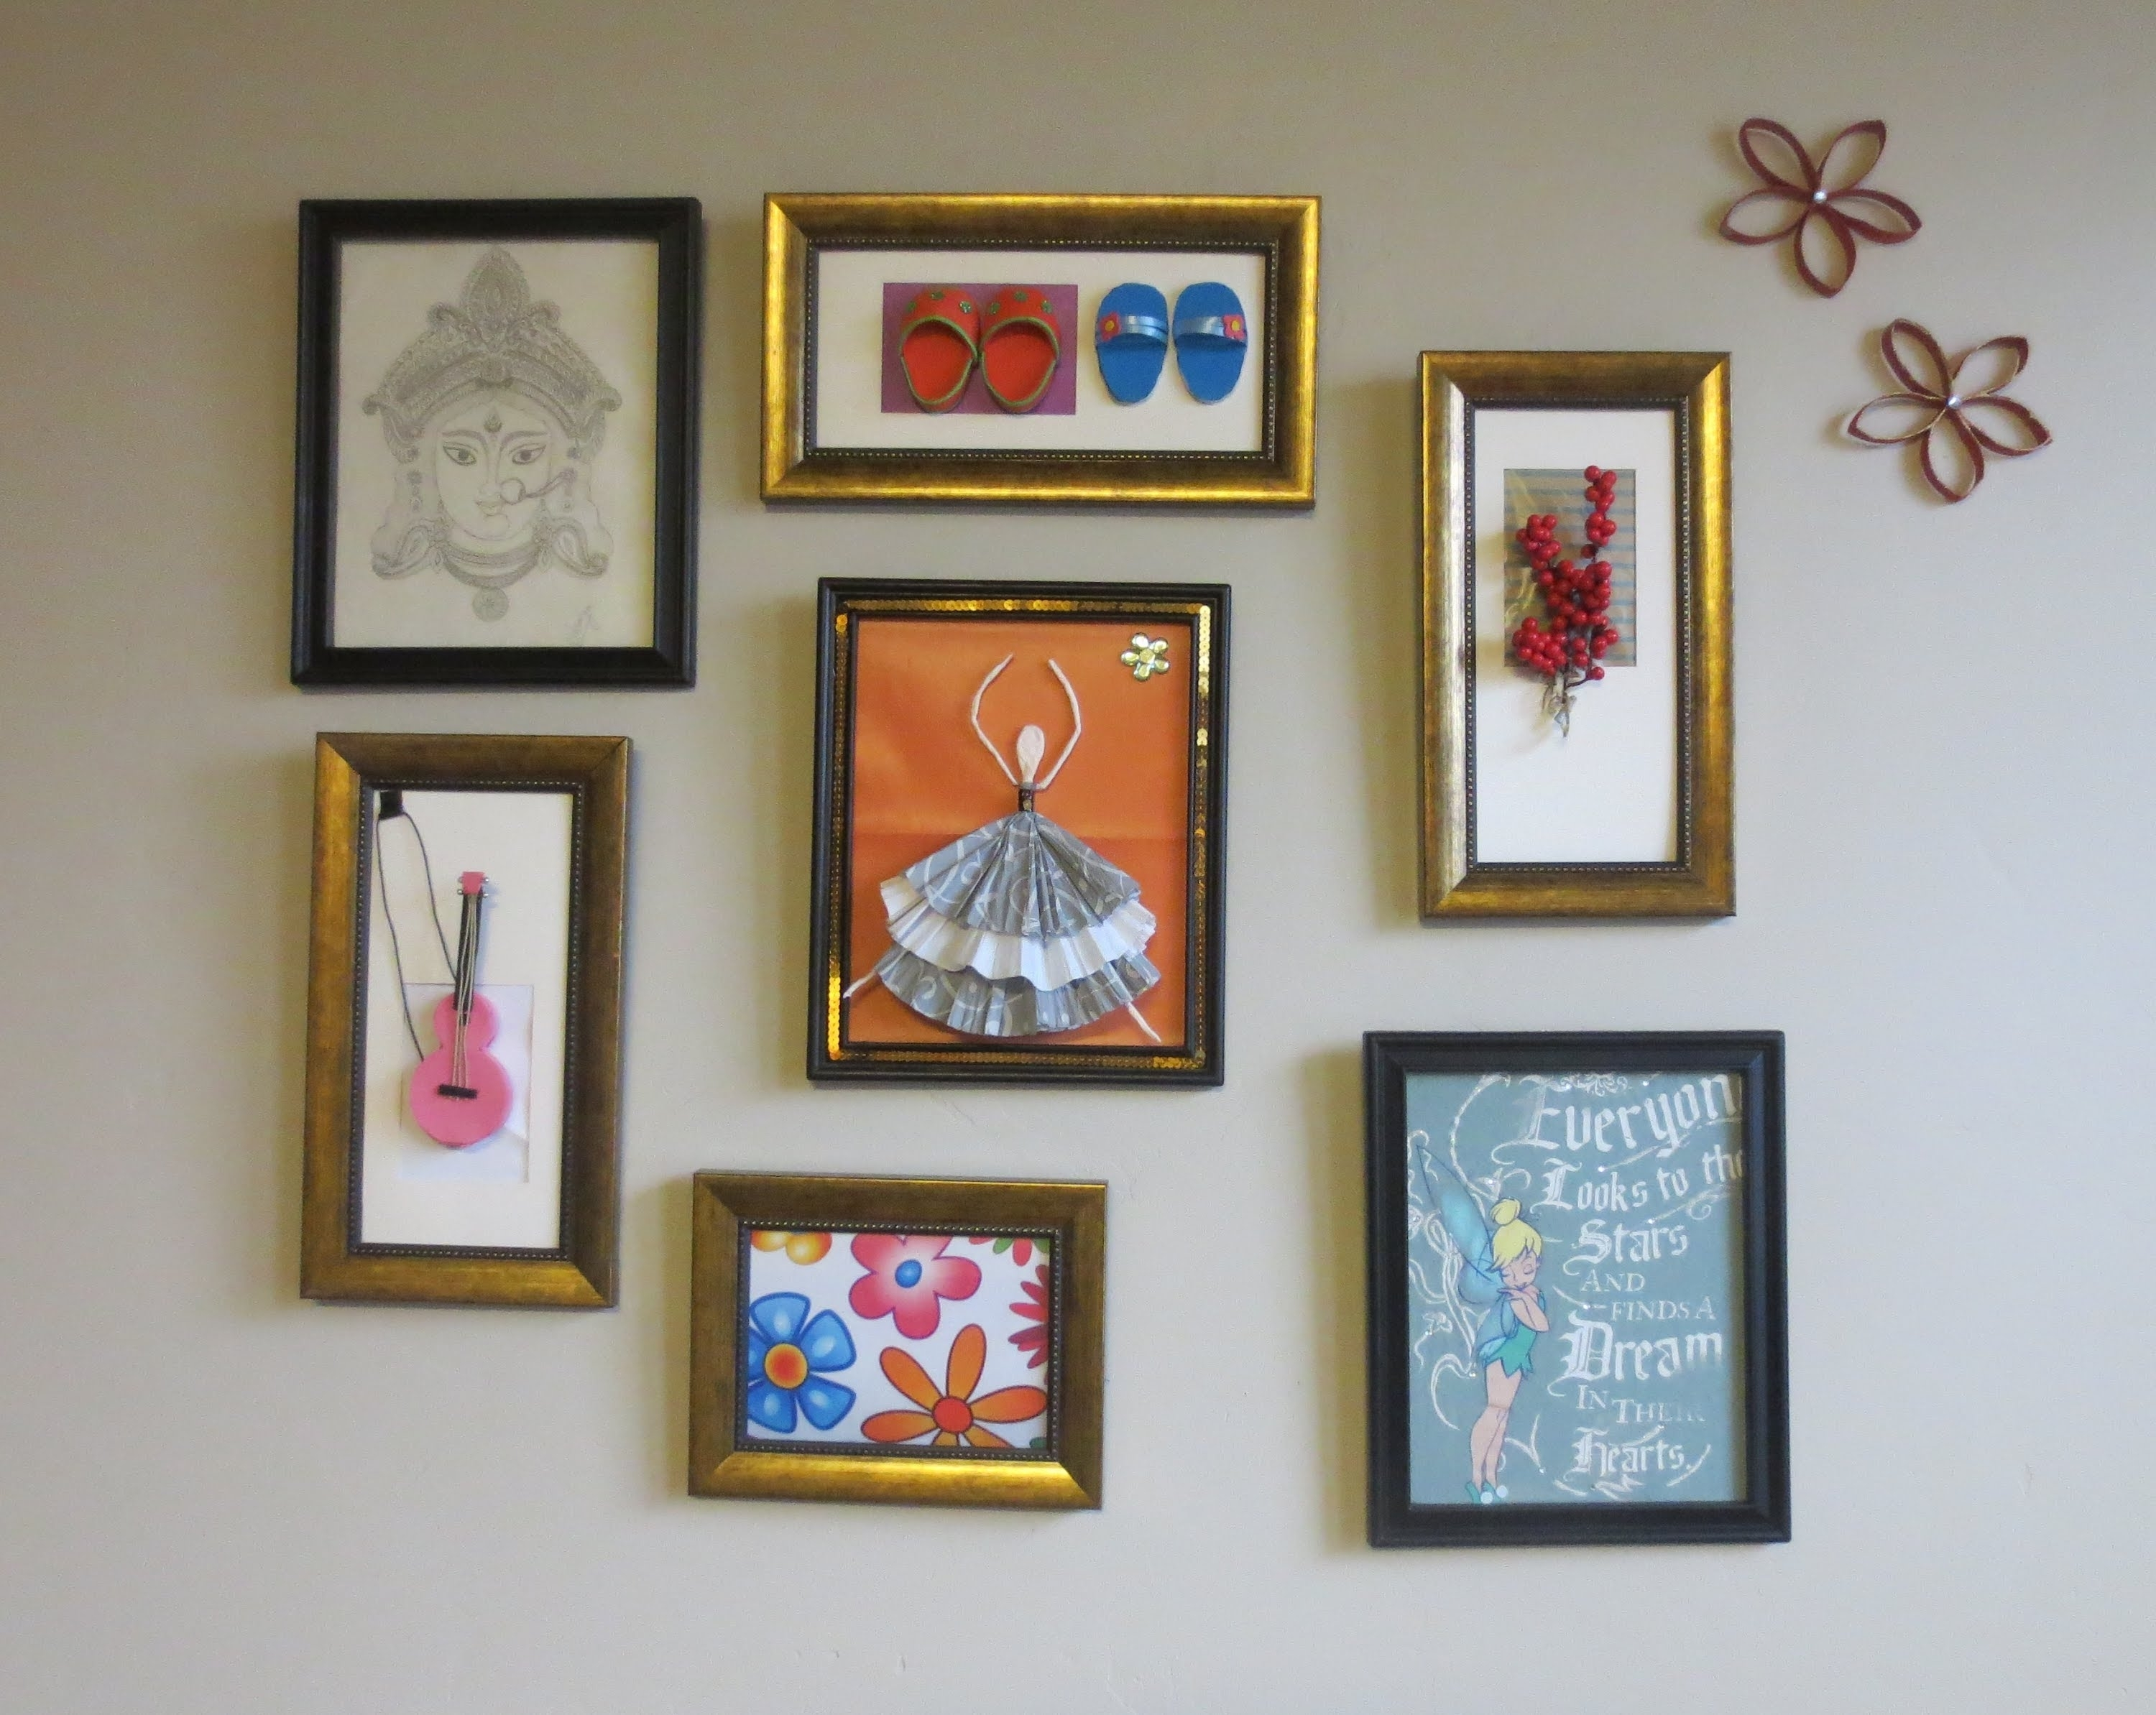 Home Decor : Tshirt Graphic & 3d Wall Art Picture Frame Collage Intended For Recent Cheap Framed Wall Art (View 5 of 20)